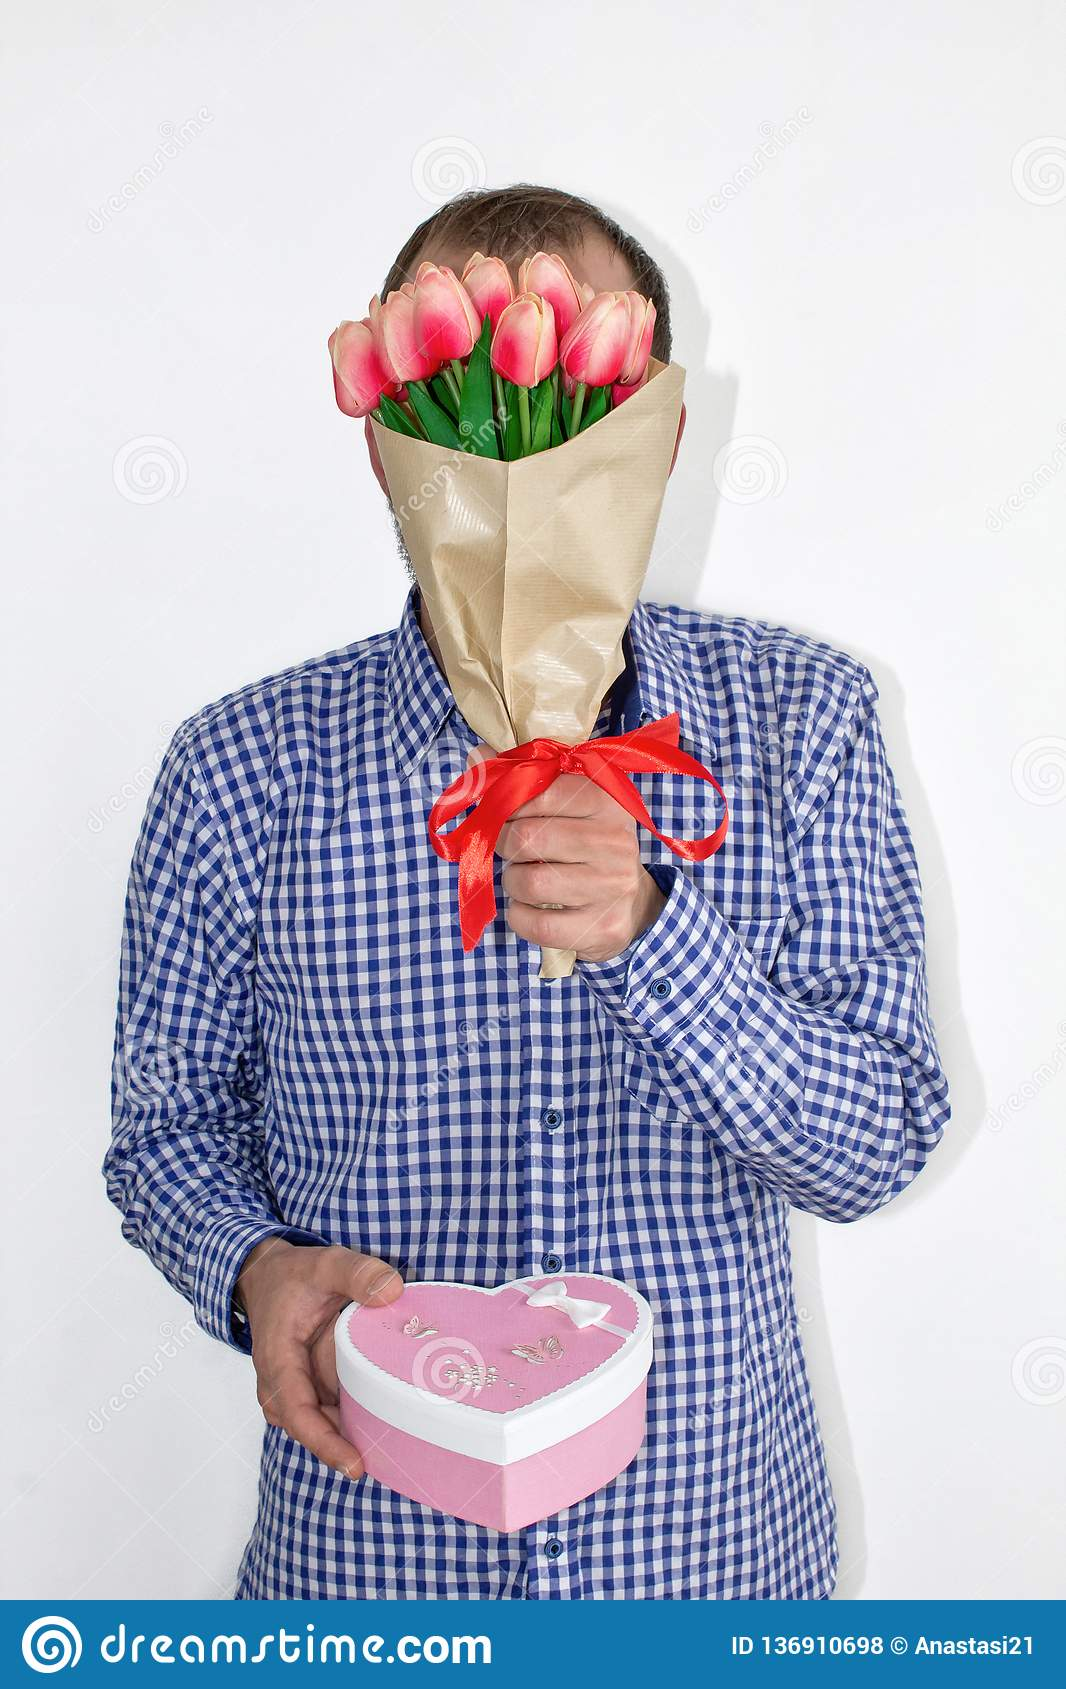 A man in a shirt holds tulips flowers in front of his face and holds out a heart-shaped box on a white background.